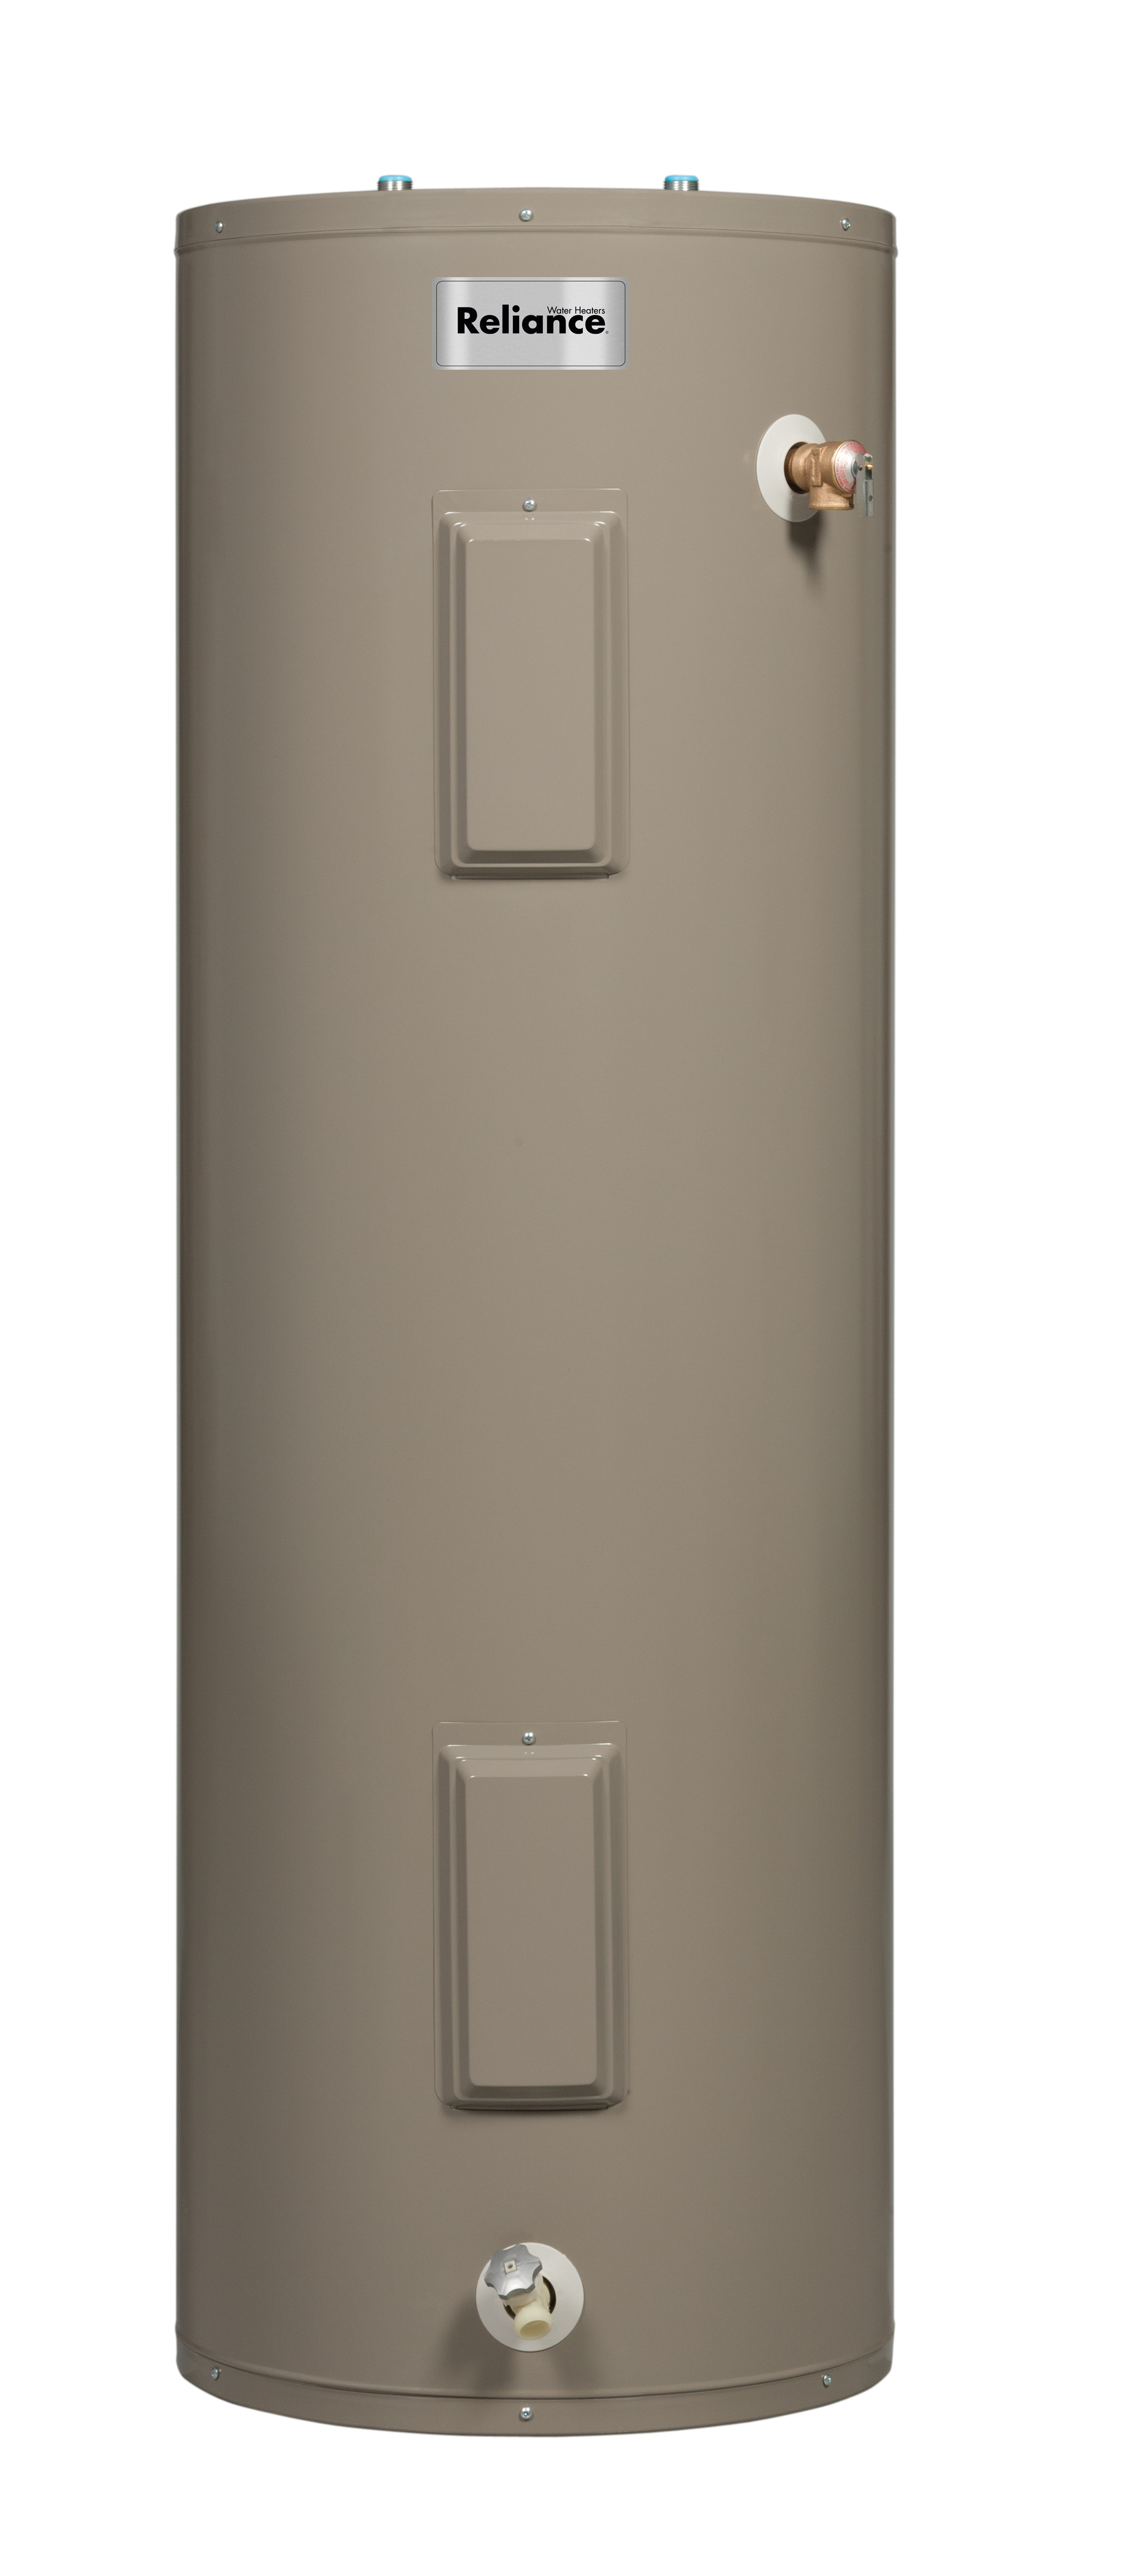 Lowboy Water Heater 50 Gallon Products Media Bank Reliance Water Heater Reliance Water